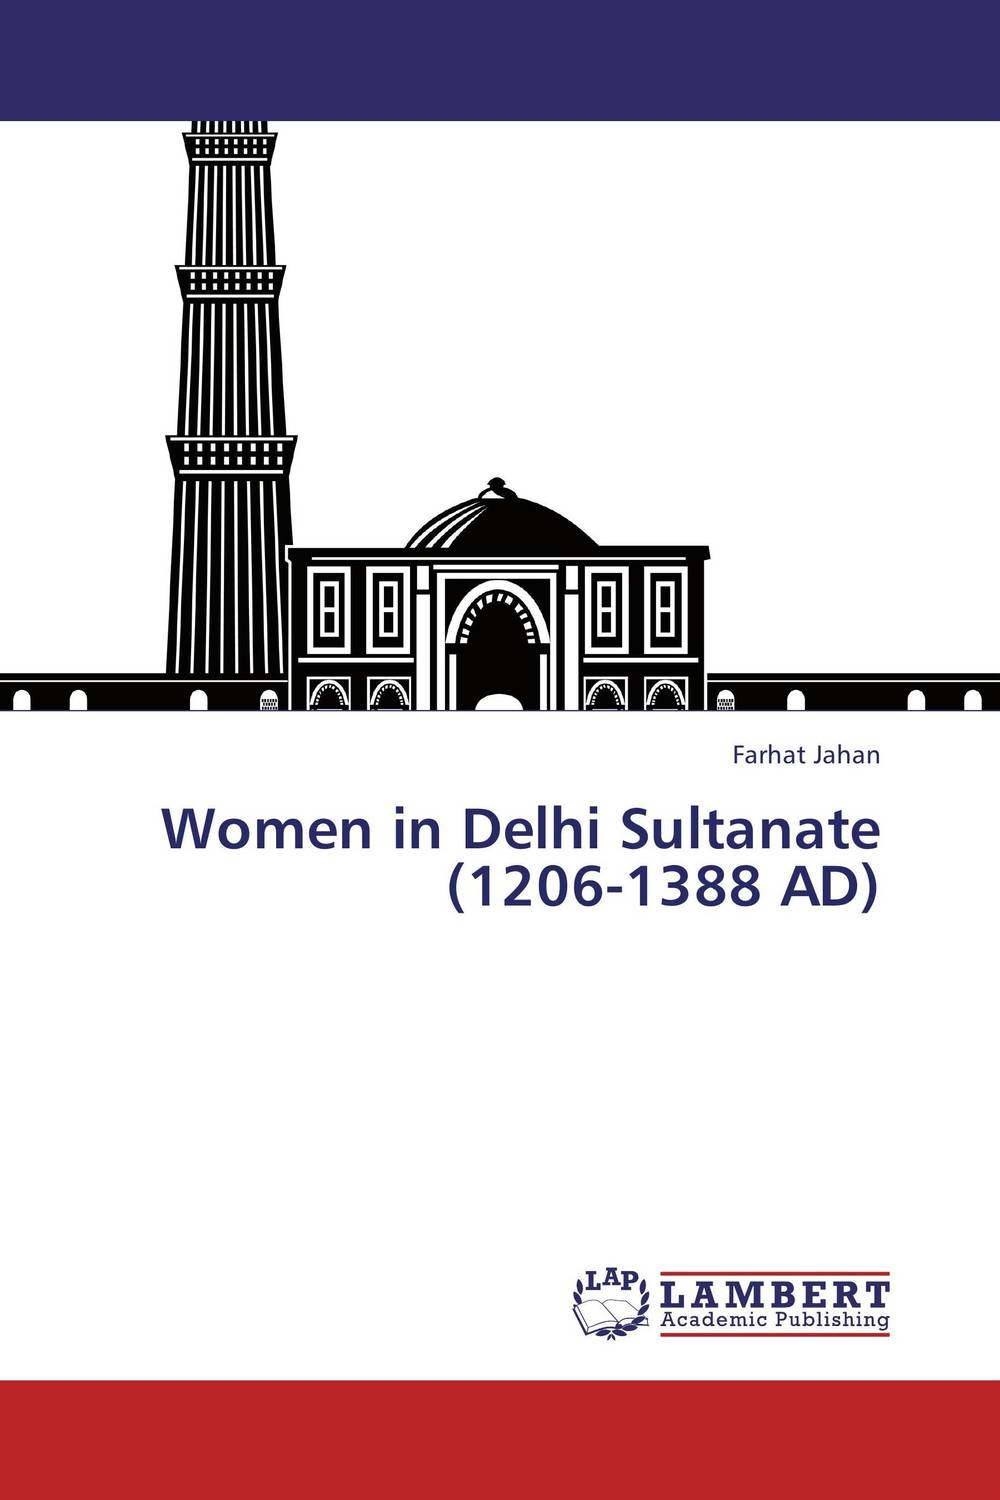 Women in Delhi Sultanate (1206-1388 AD) arcade ndoricimpa inflation output growth and their uncertainties in south africa empirical evidence from an asymmetric multivariate garch m model